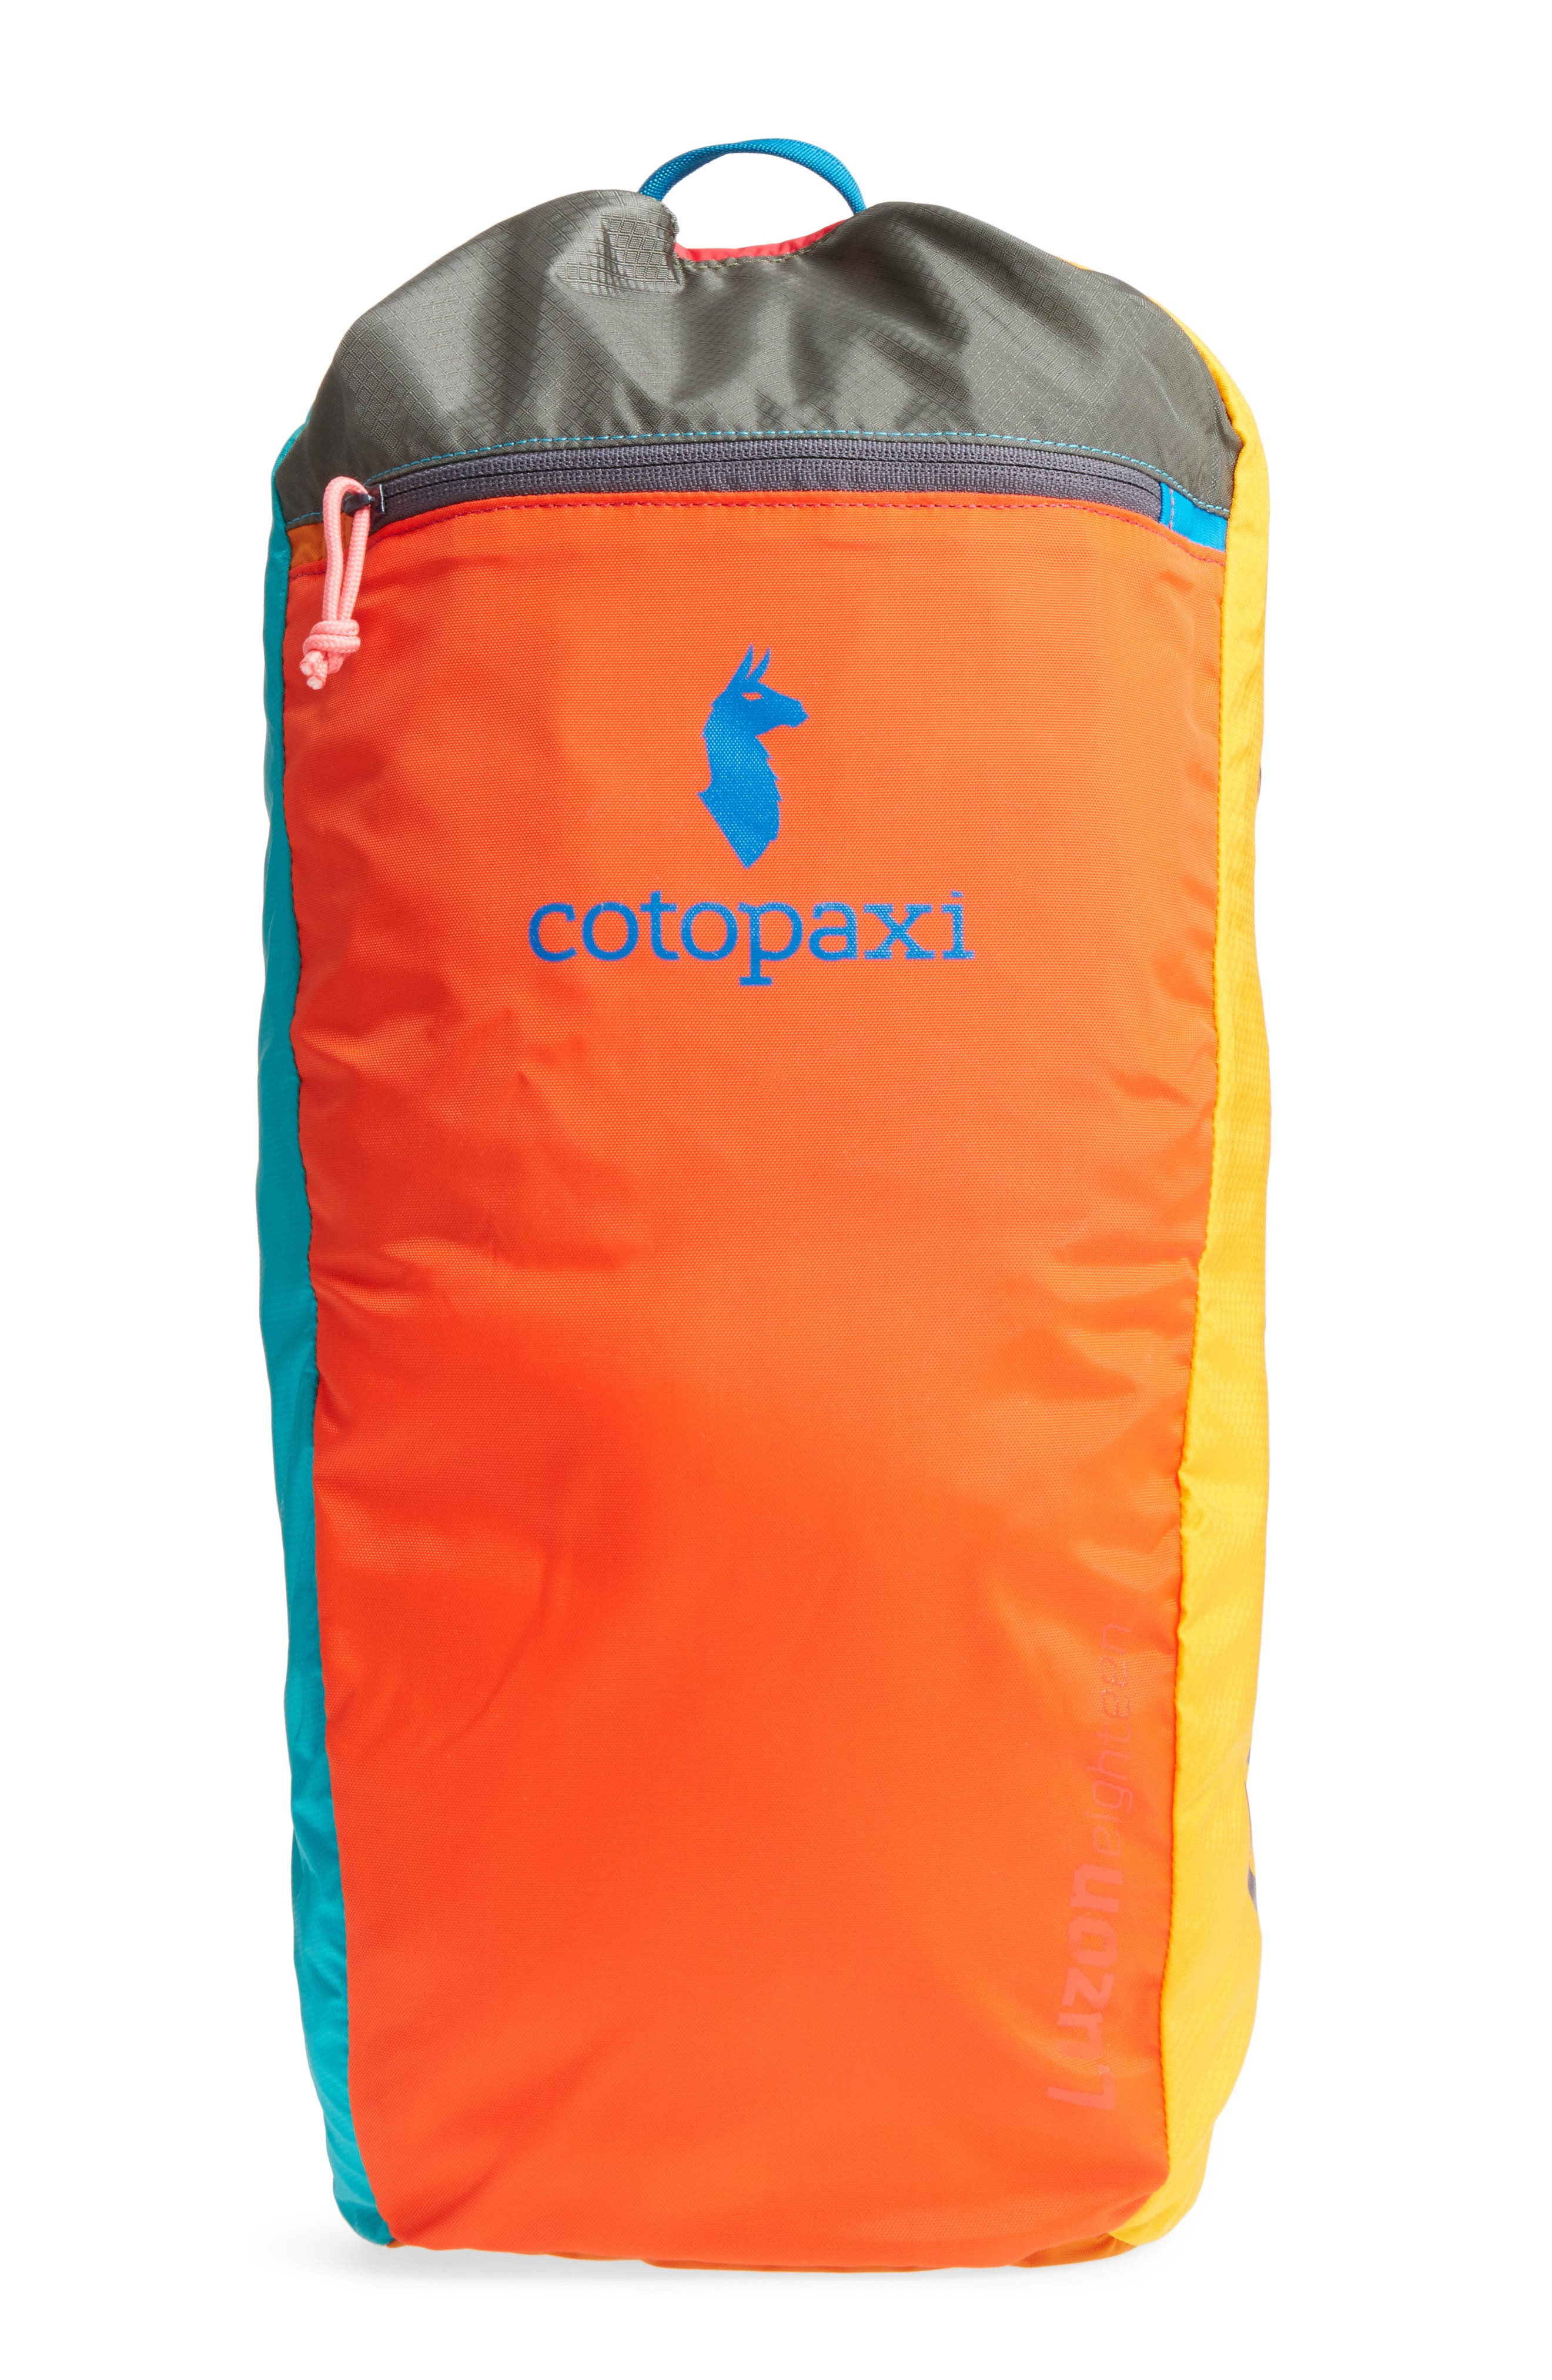 Main Image - Cotopaxi Luzon Del Día One of a Kind Ripstop Nylon Daypack (18L)